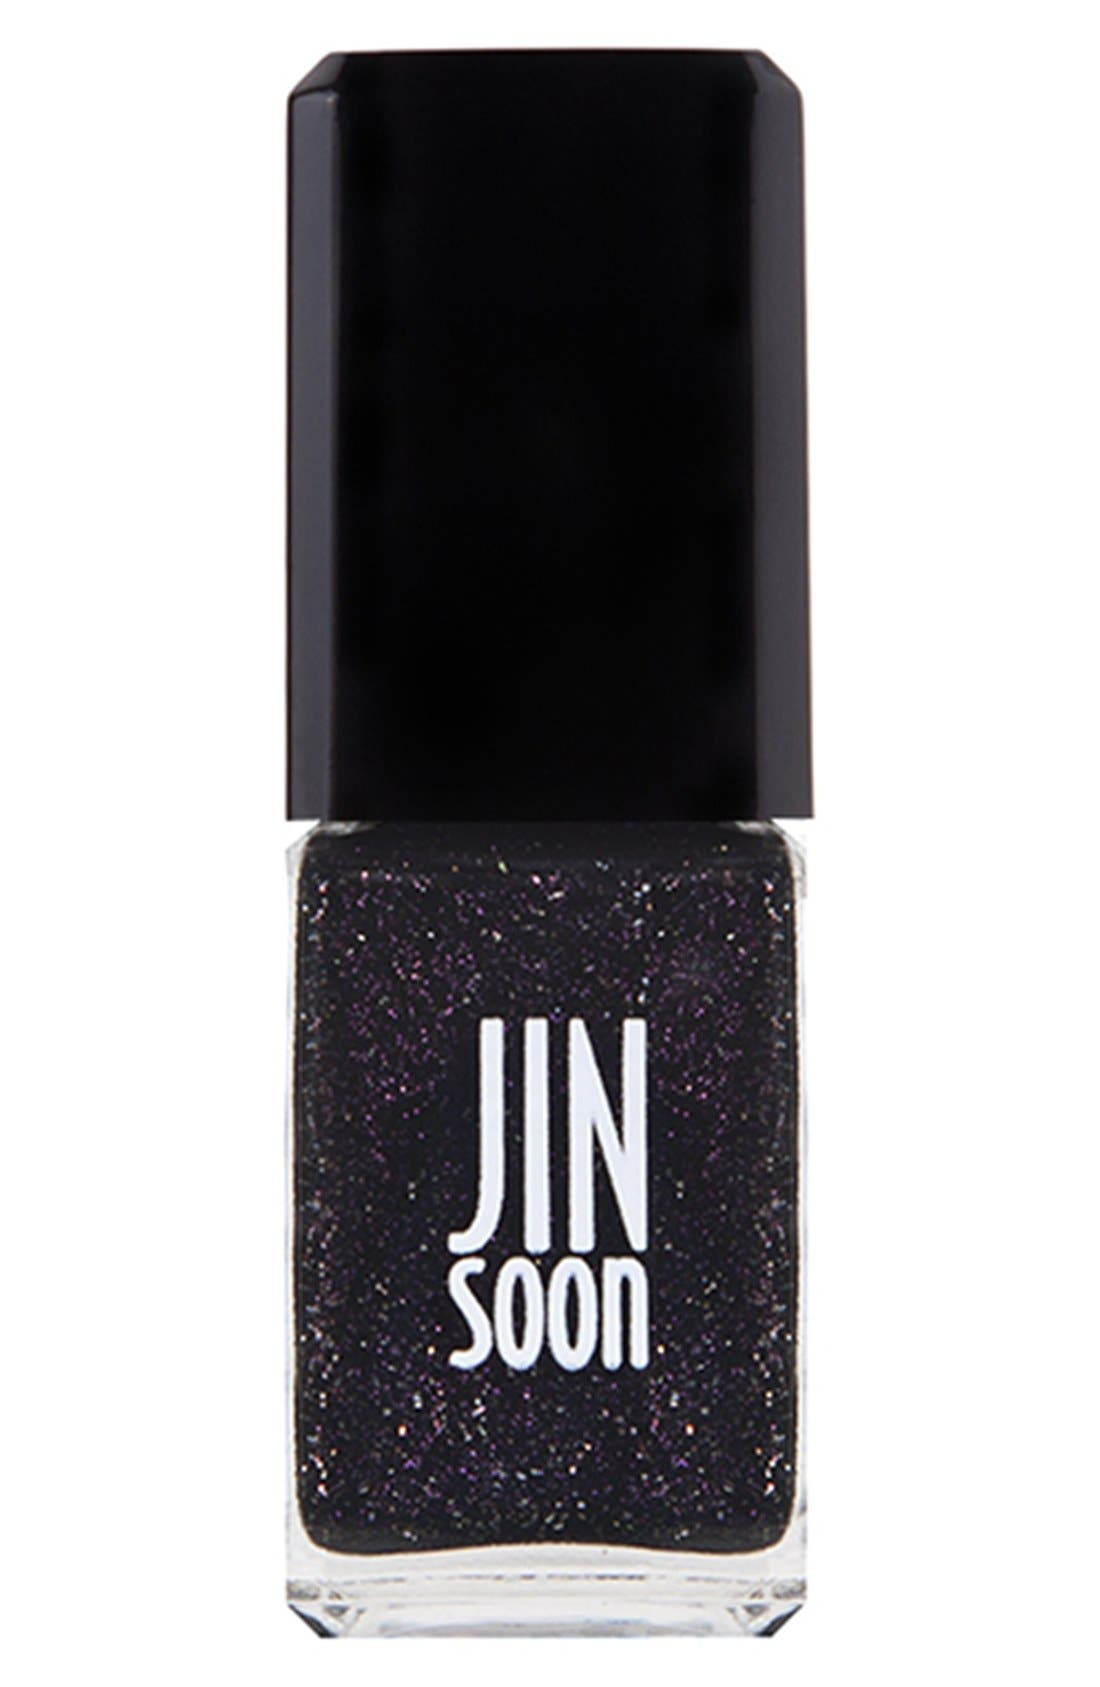 JINsoon 'Obsidian' Nail Lacquer